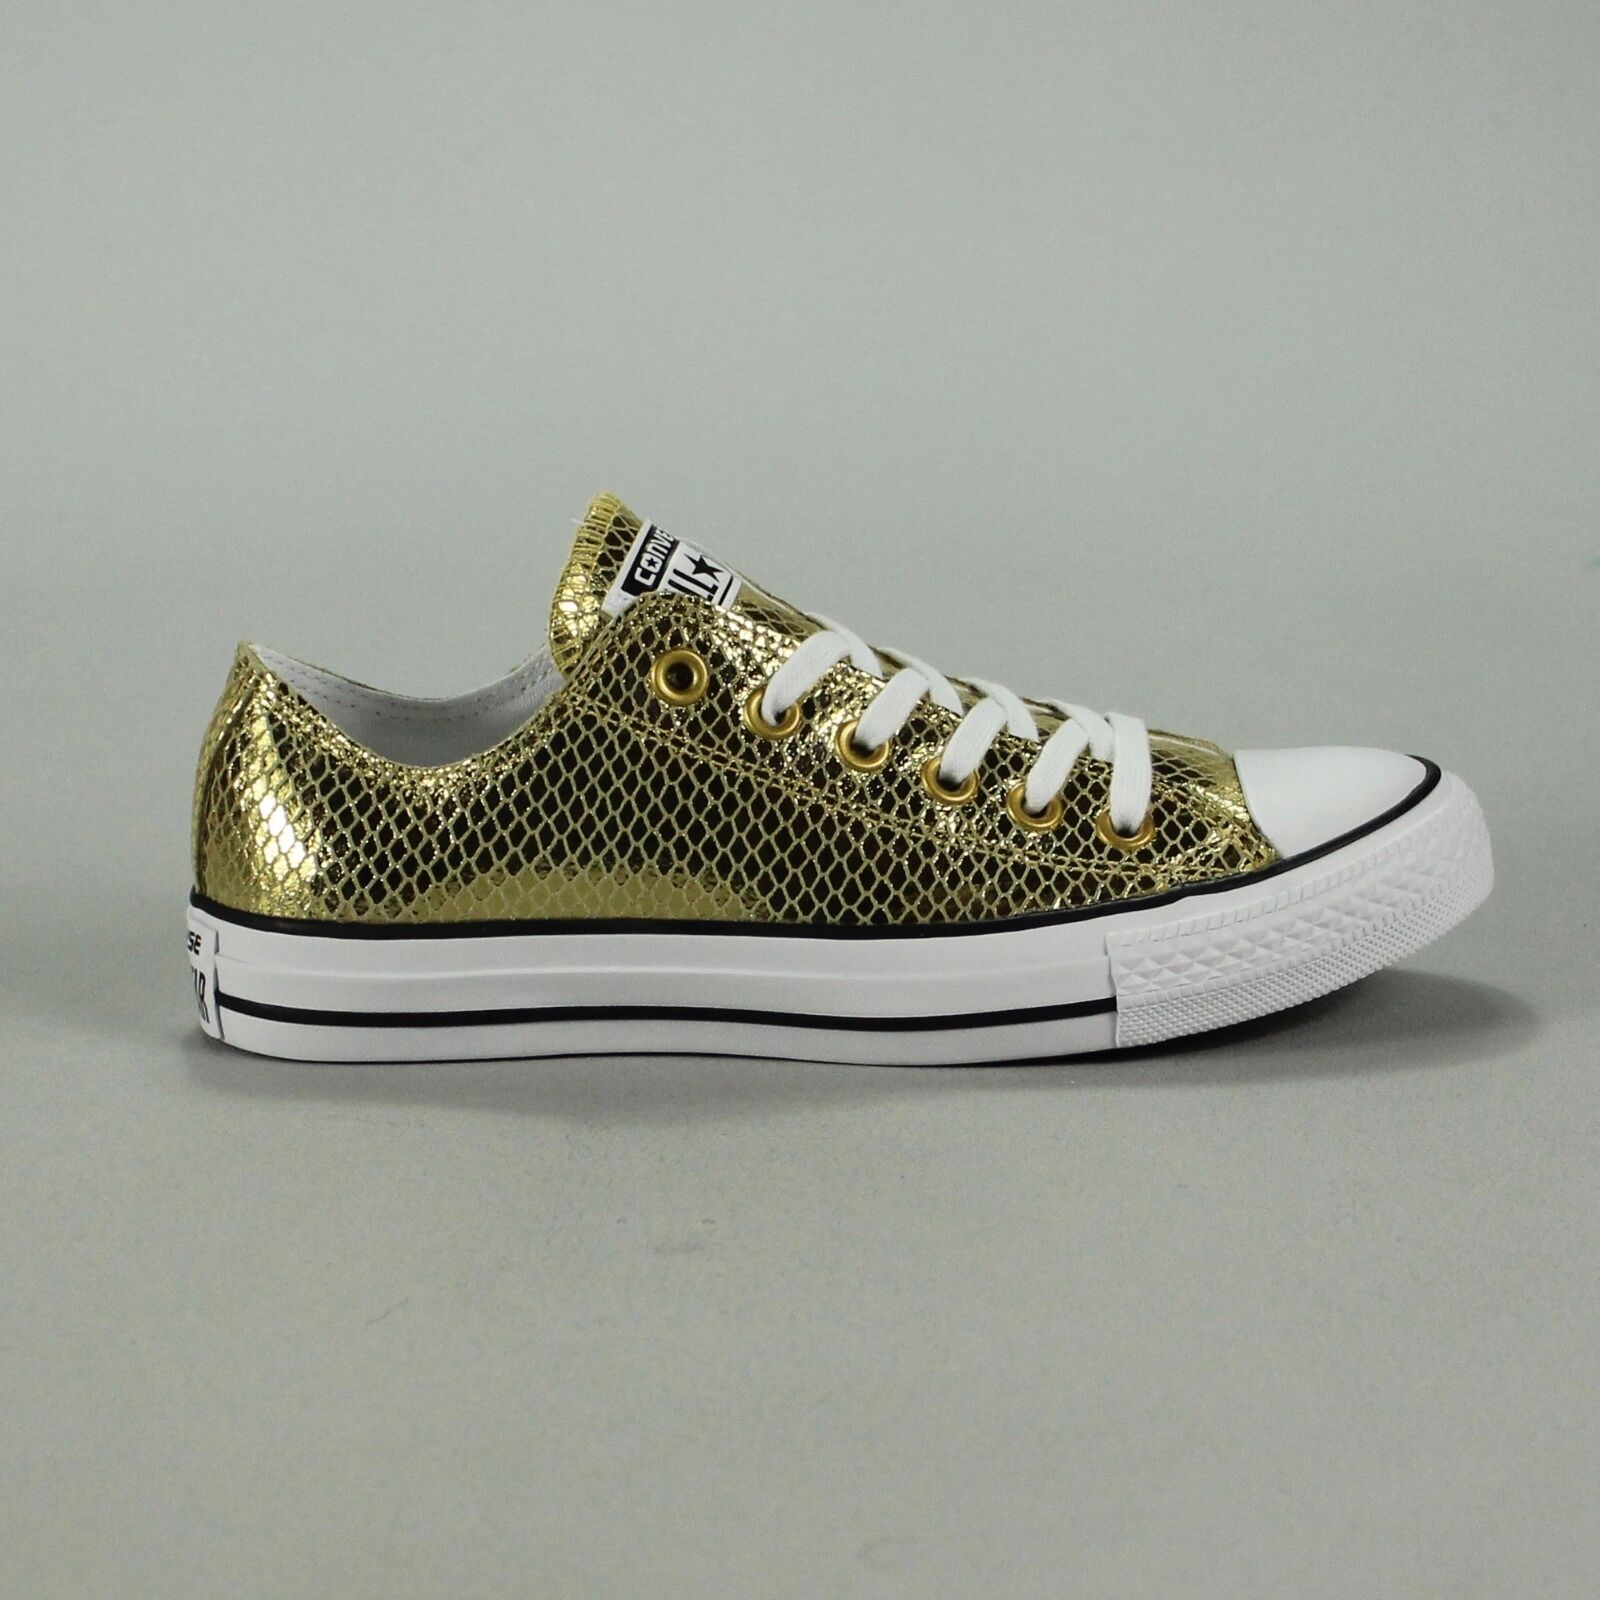 Converse CT AS OX Leather Trainers gold Black White New in box UK size 4,5,6